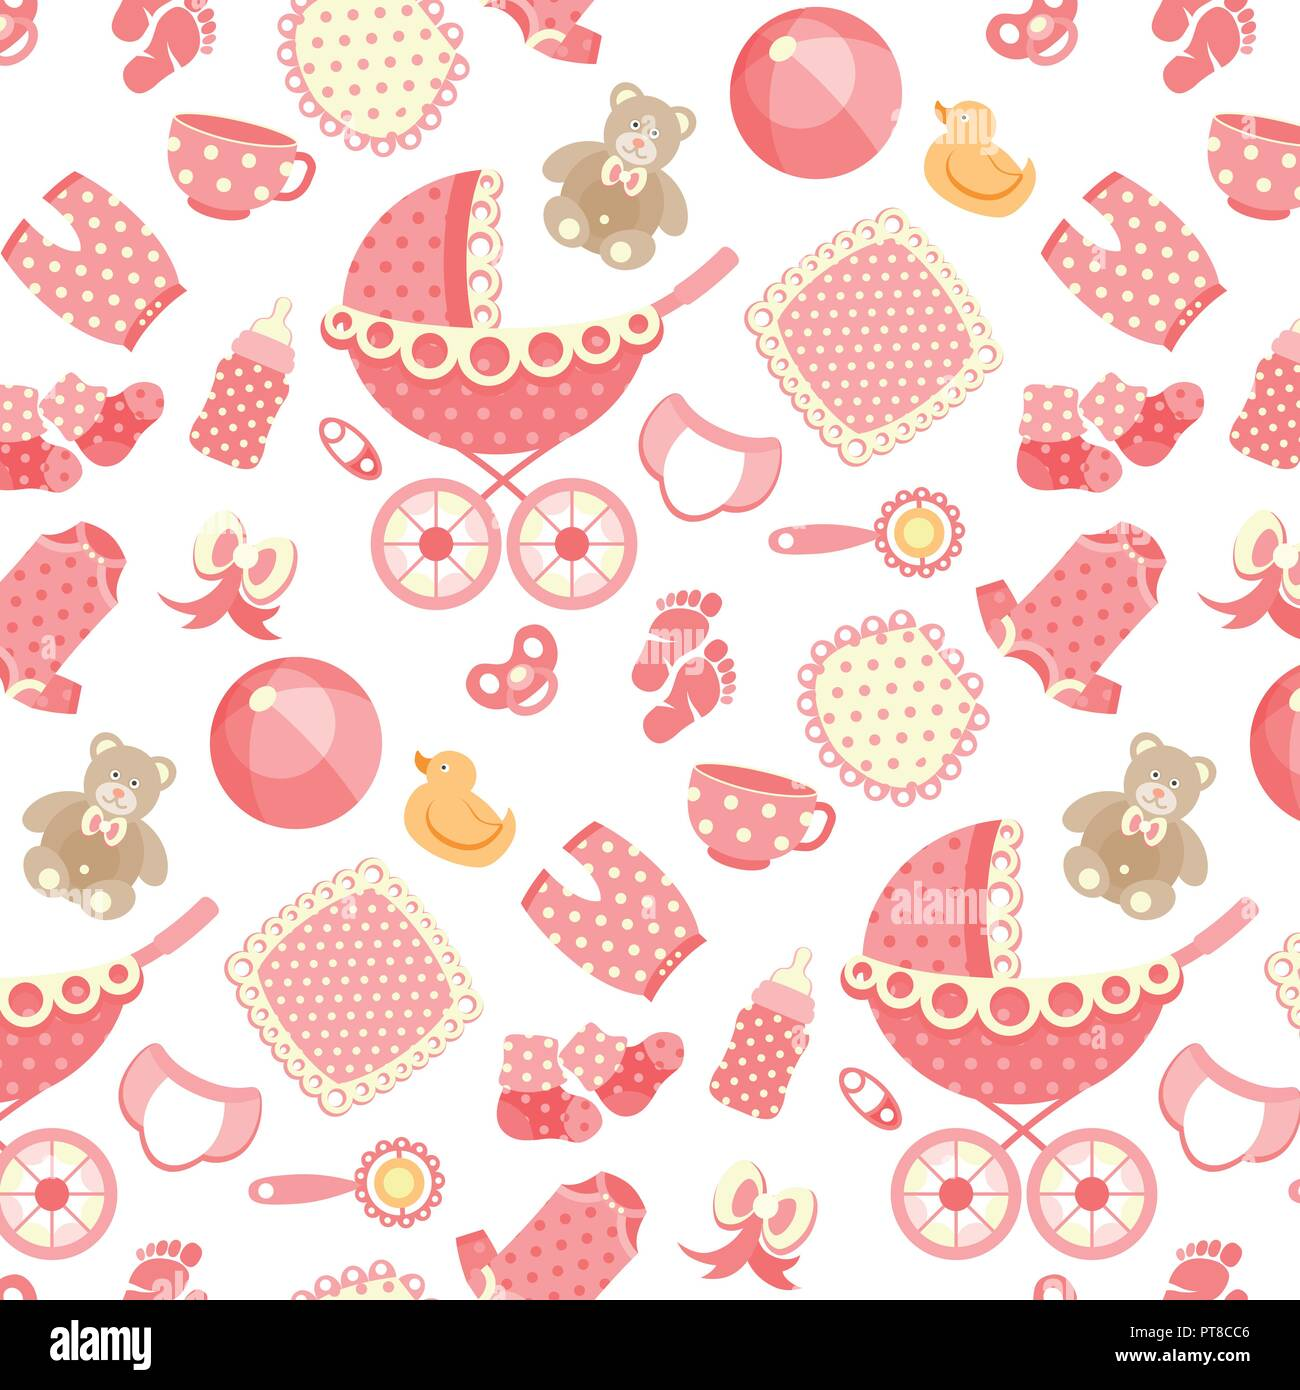 f1cfdc47d Vector seamless pattern with baby objects. Newborn clothes and ...